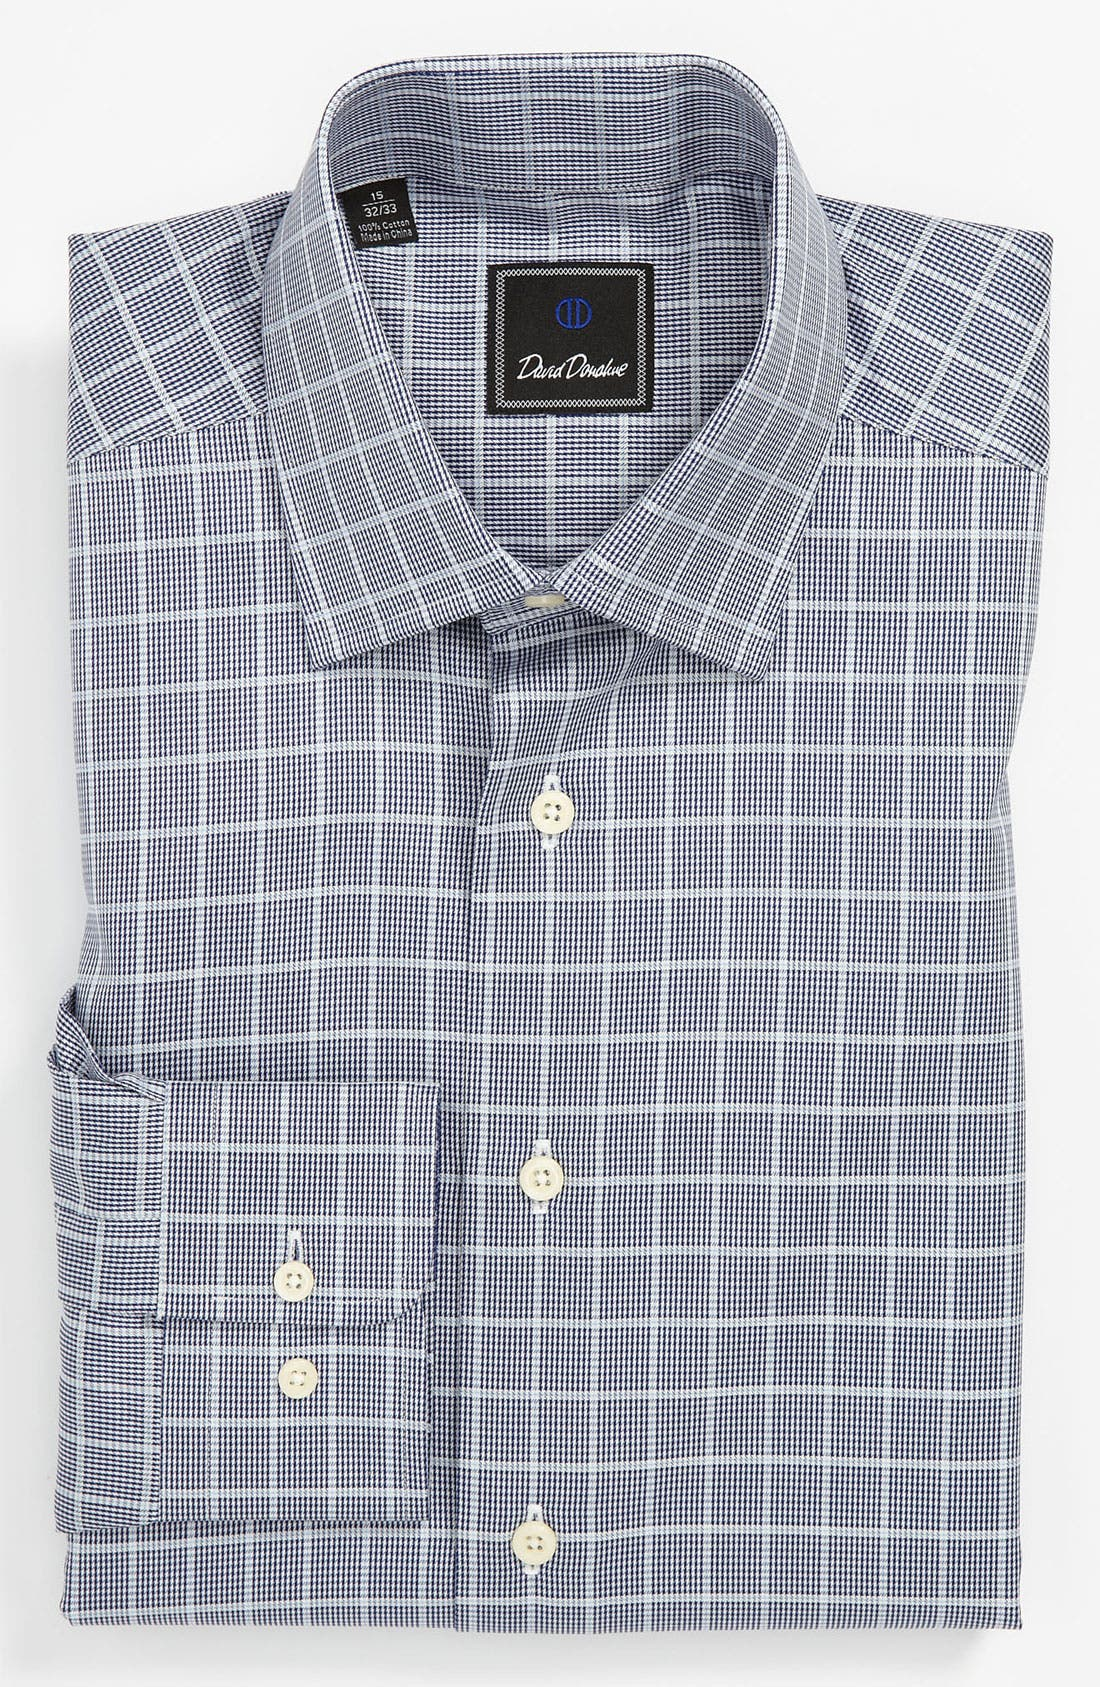 Alternate Image 1 Selected - David Donahue Regular Fit Dress Shirt (Online Exclusive)